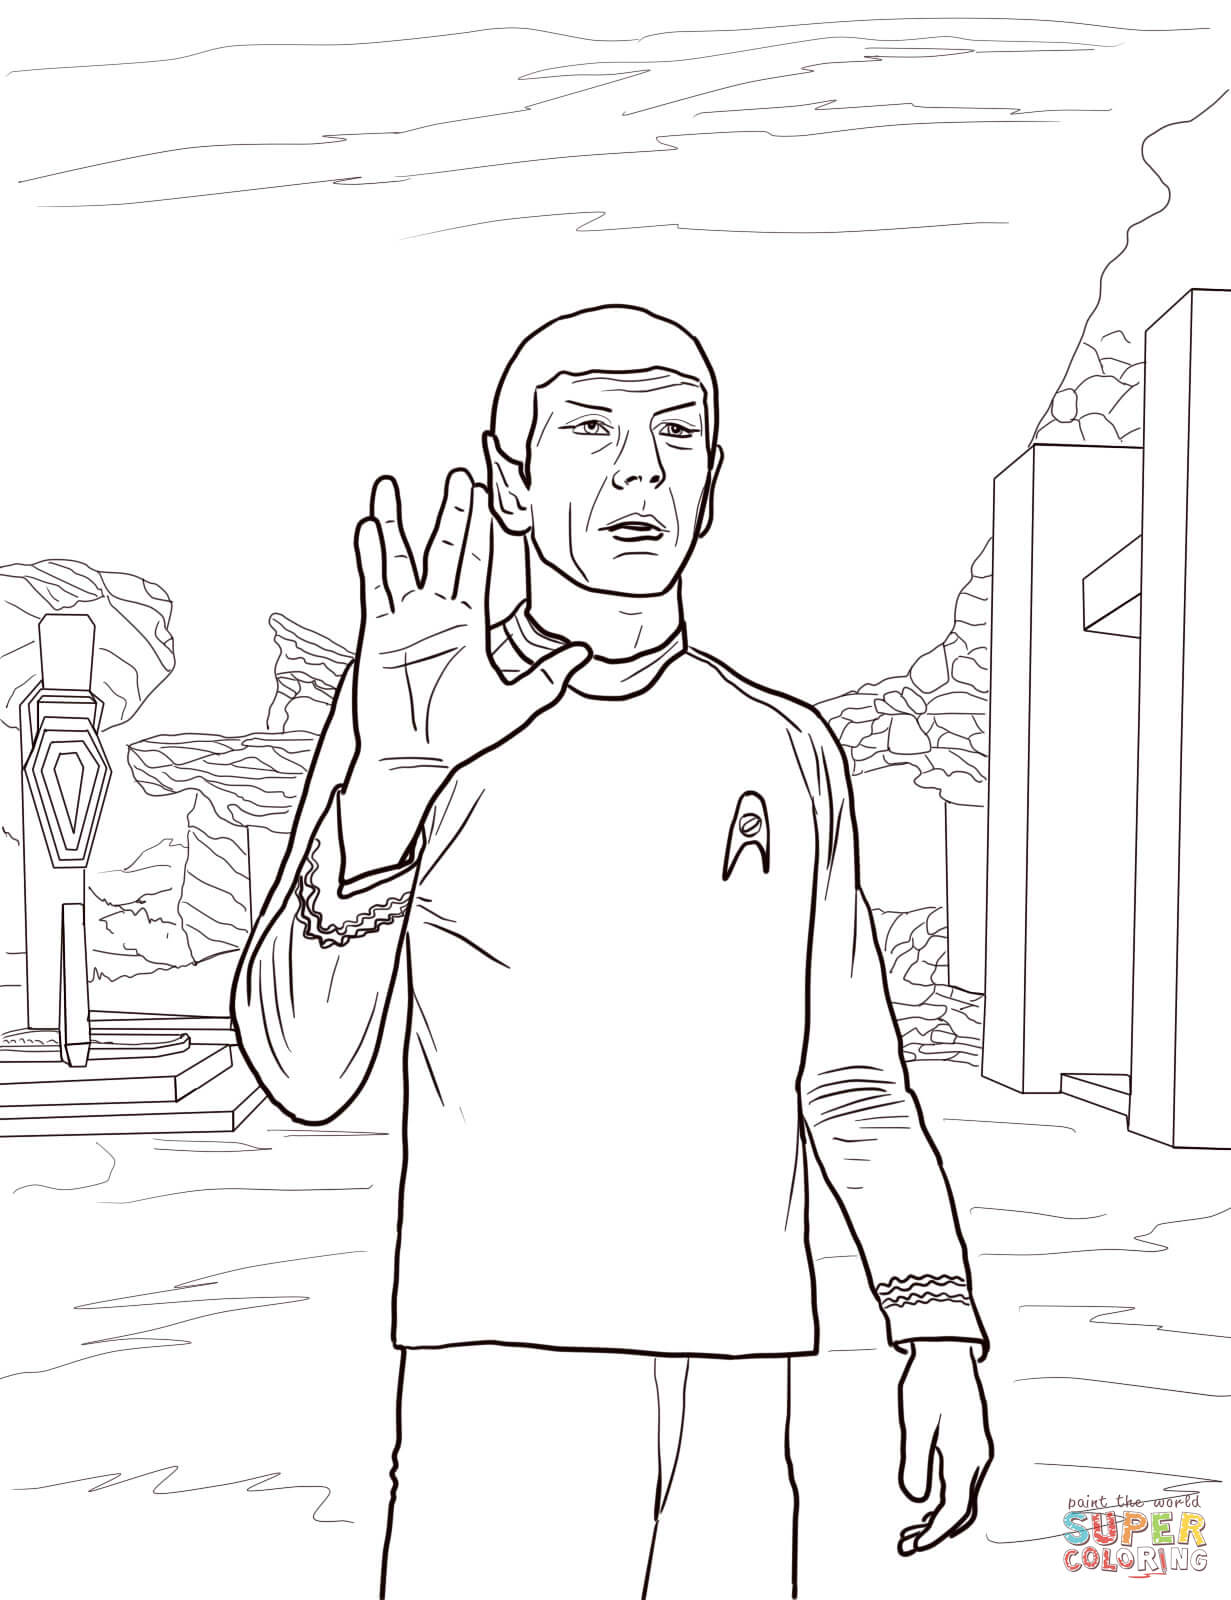 Star Trek Spock Coloring Page